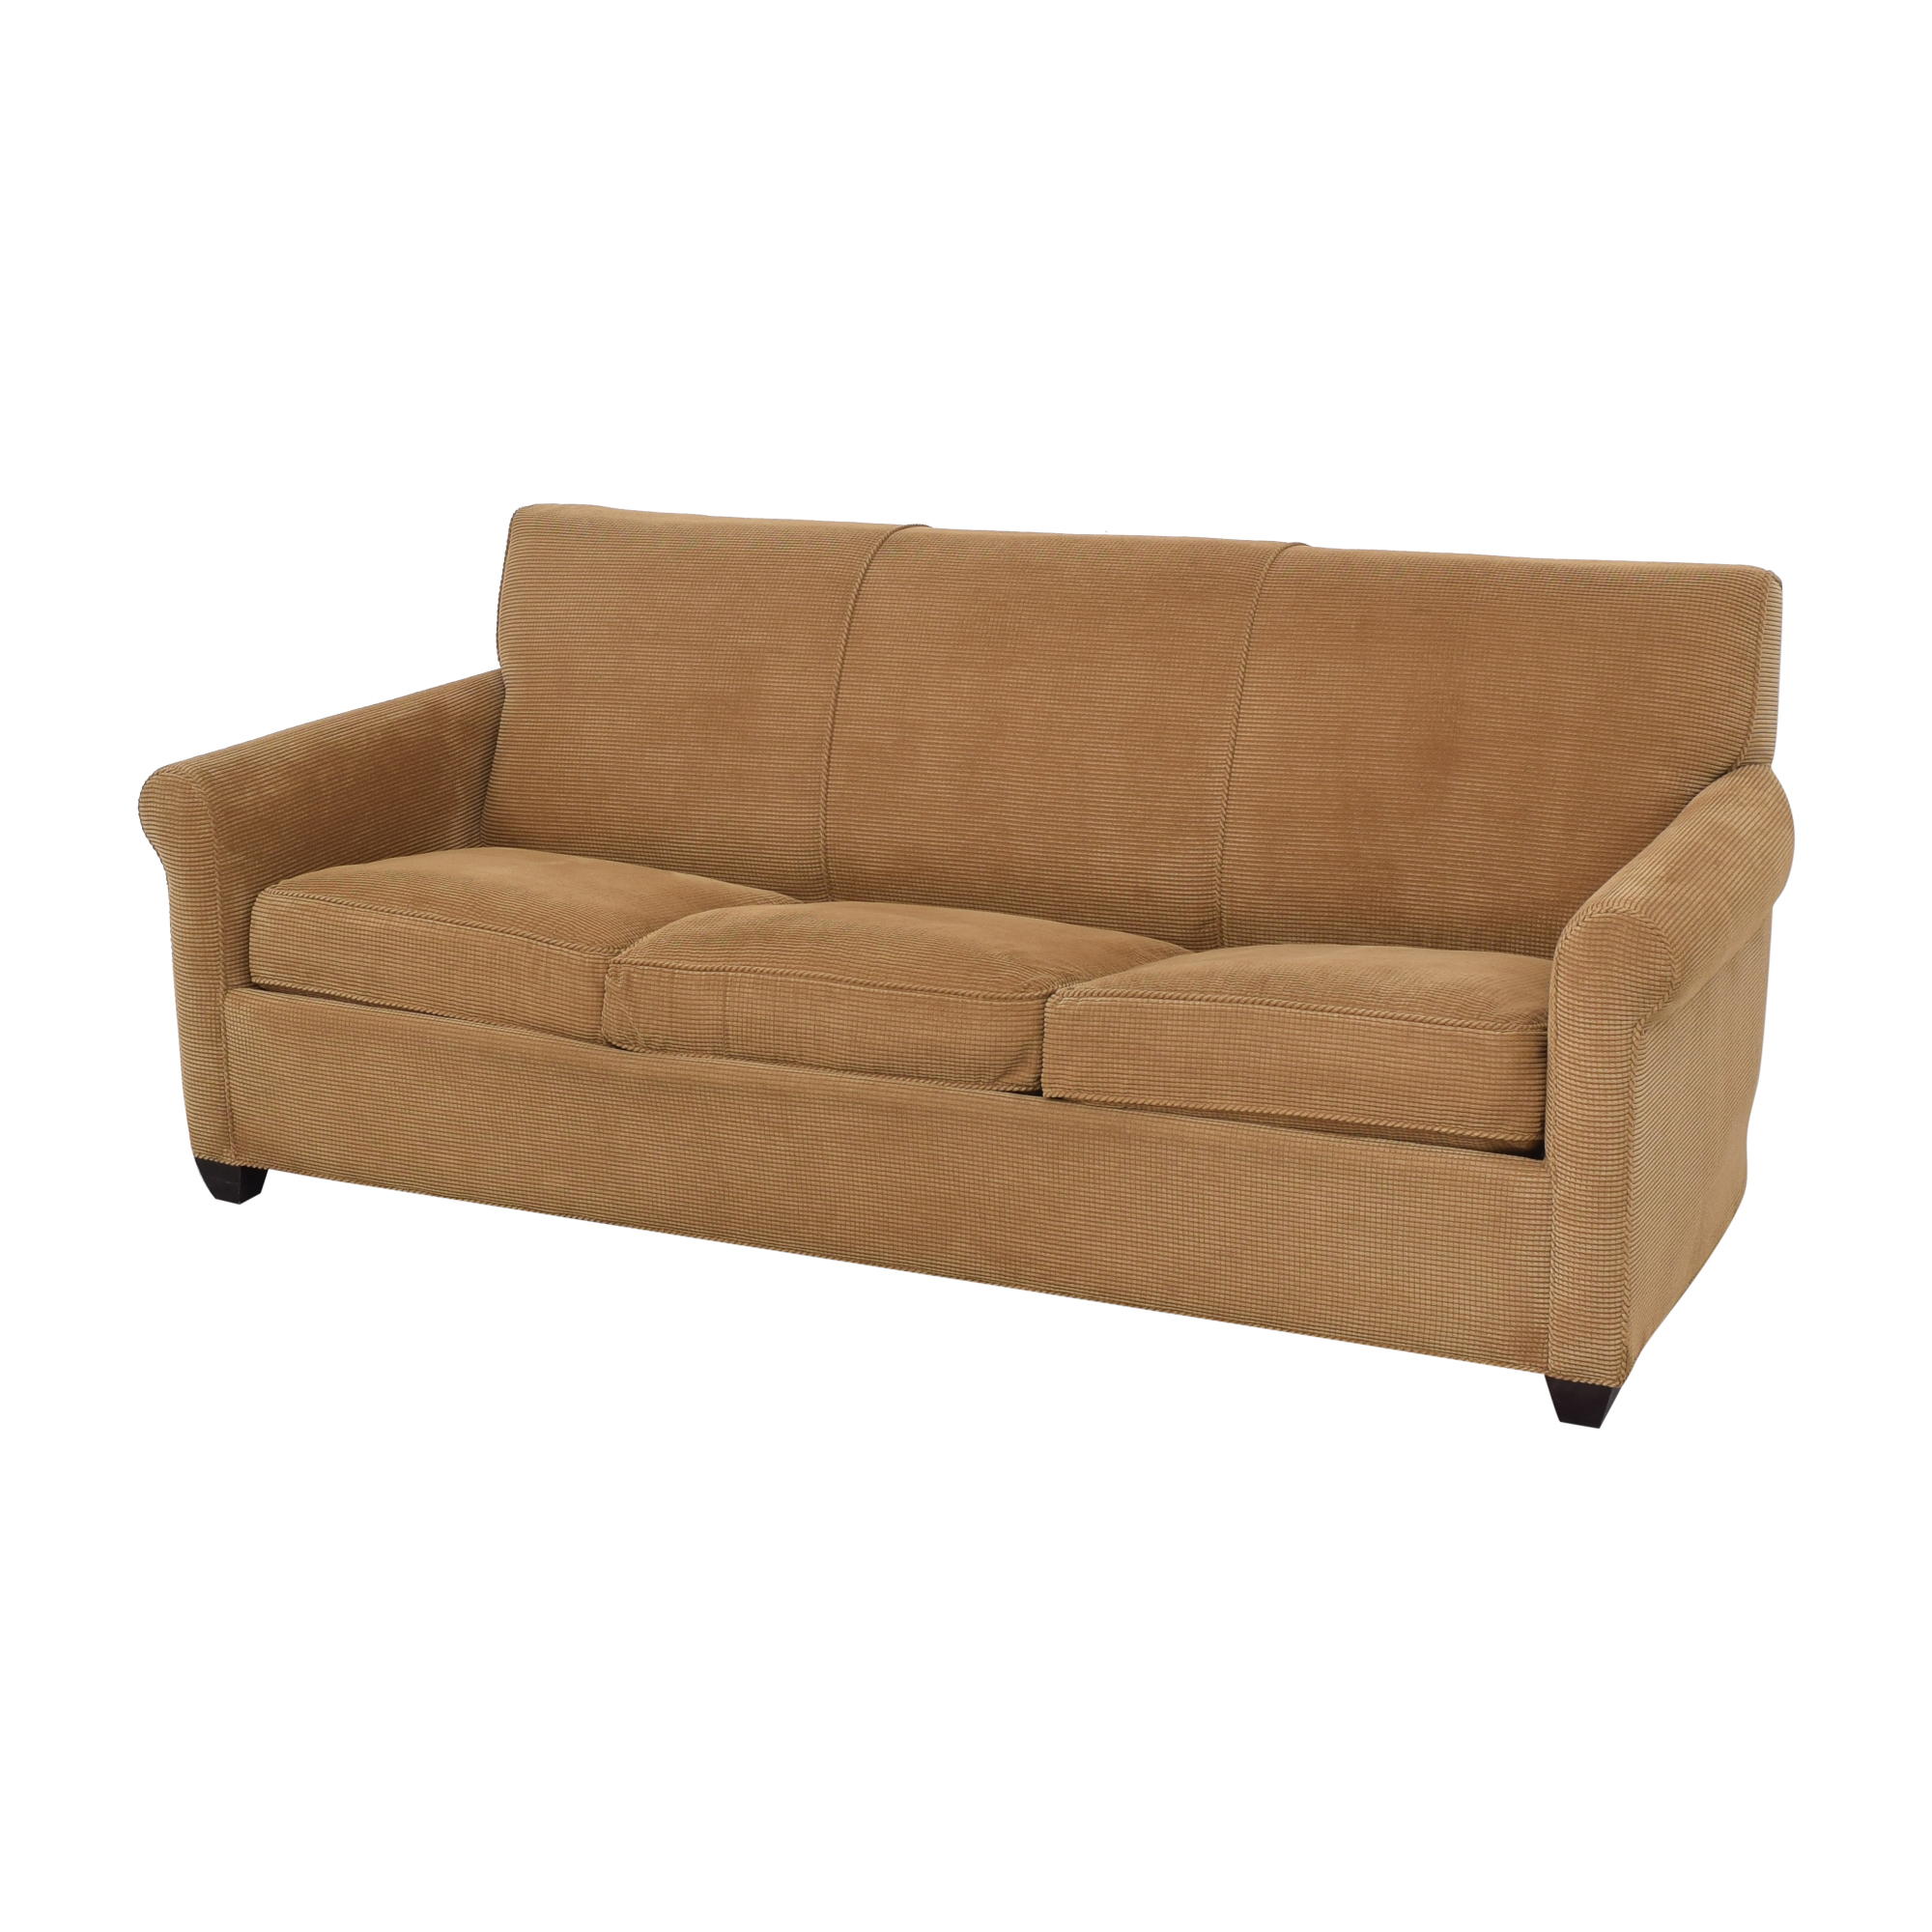 Crate & Barrel Crate & Barrel Rolled Arm Queen Sleeper Sofa discount